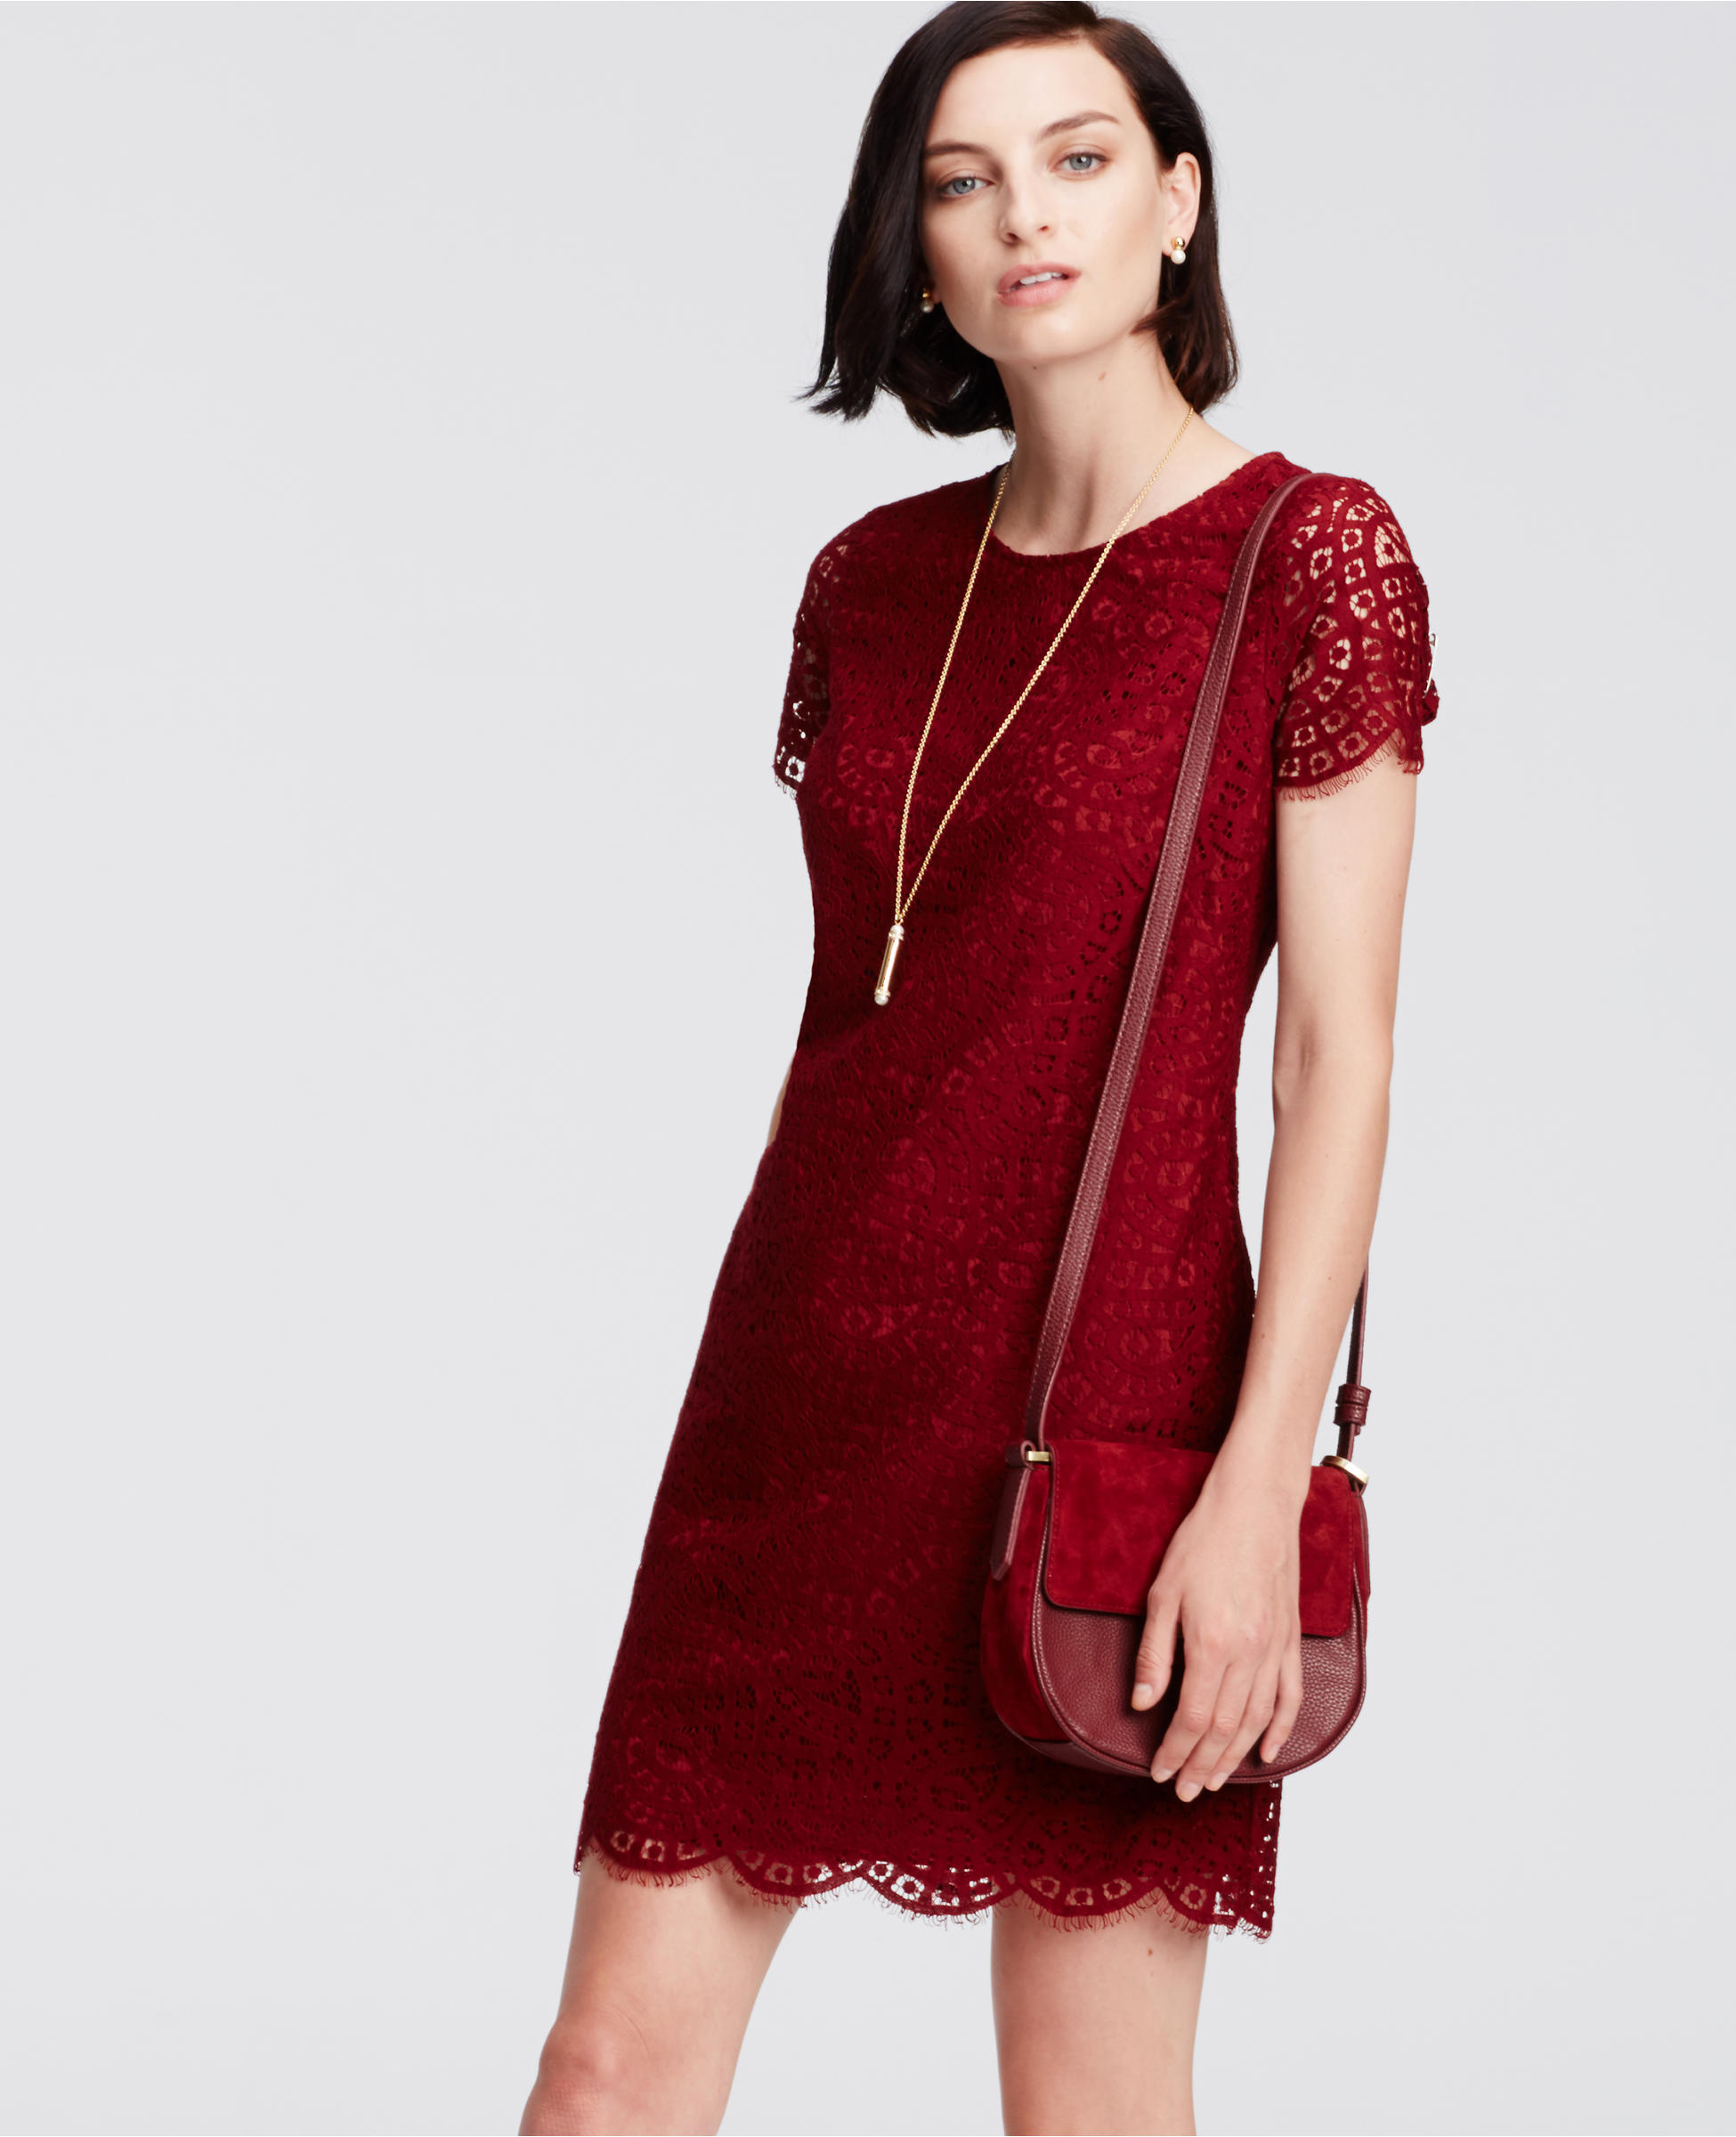 Vicky\'s Daily Fashion Blog: Ann Taylor New Arrivals - Dark Ruby